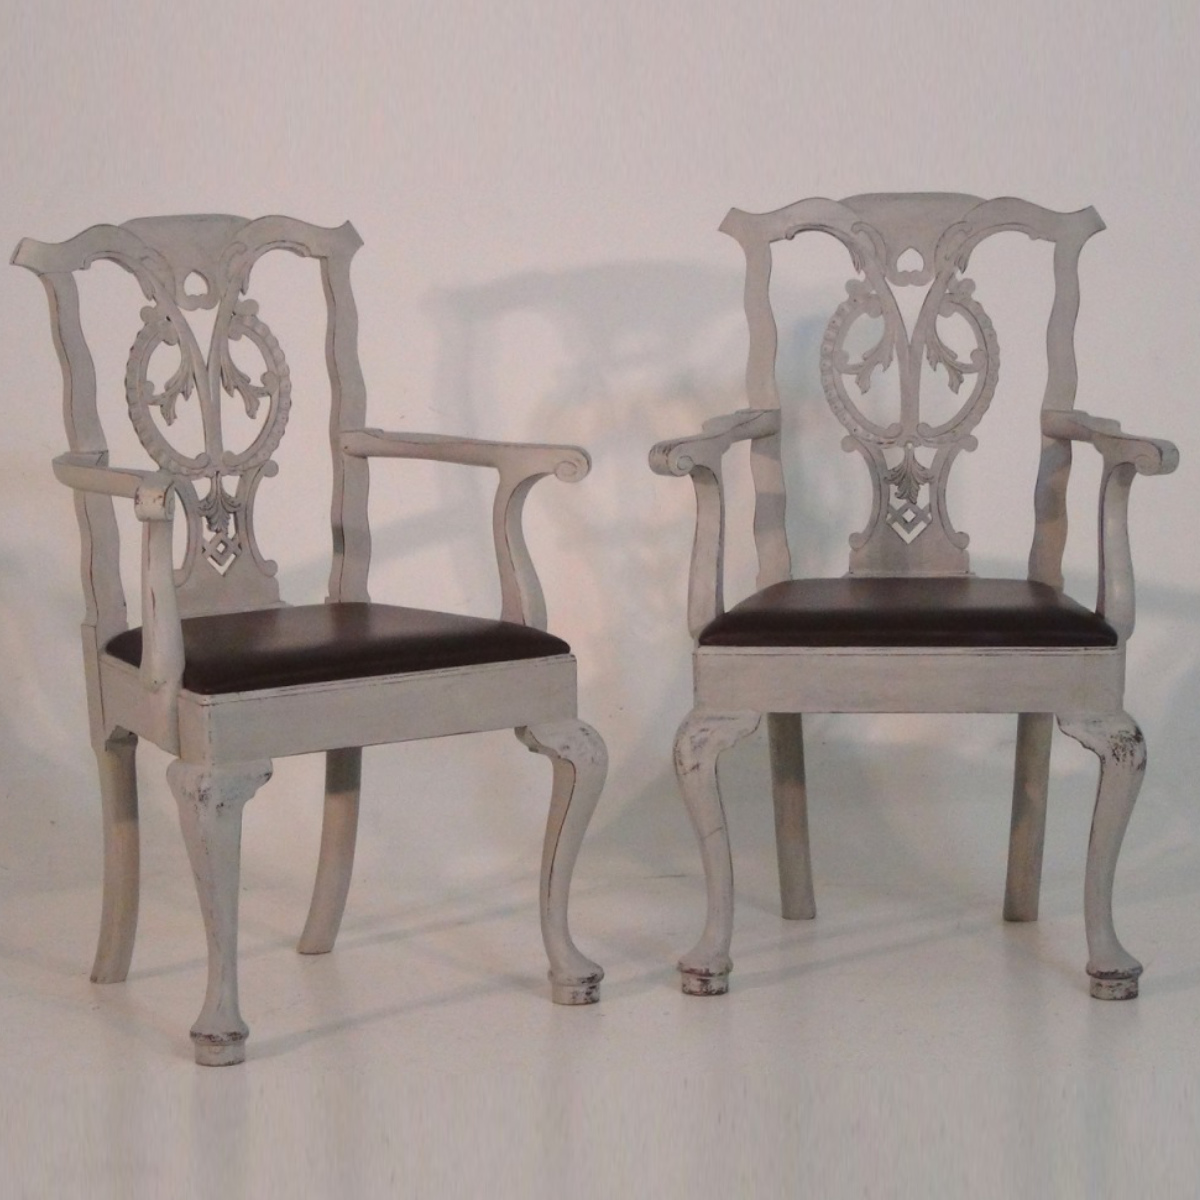 Pair of armchairs with leatherseats. - € 1.000